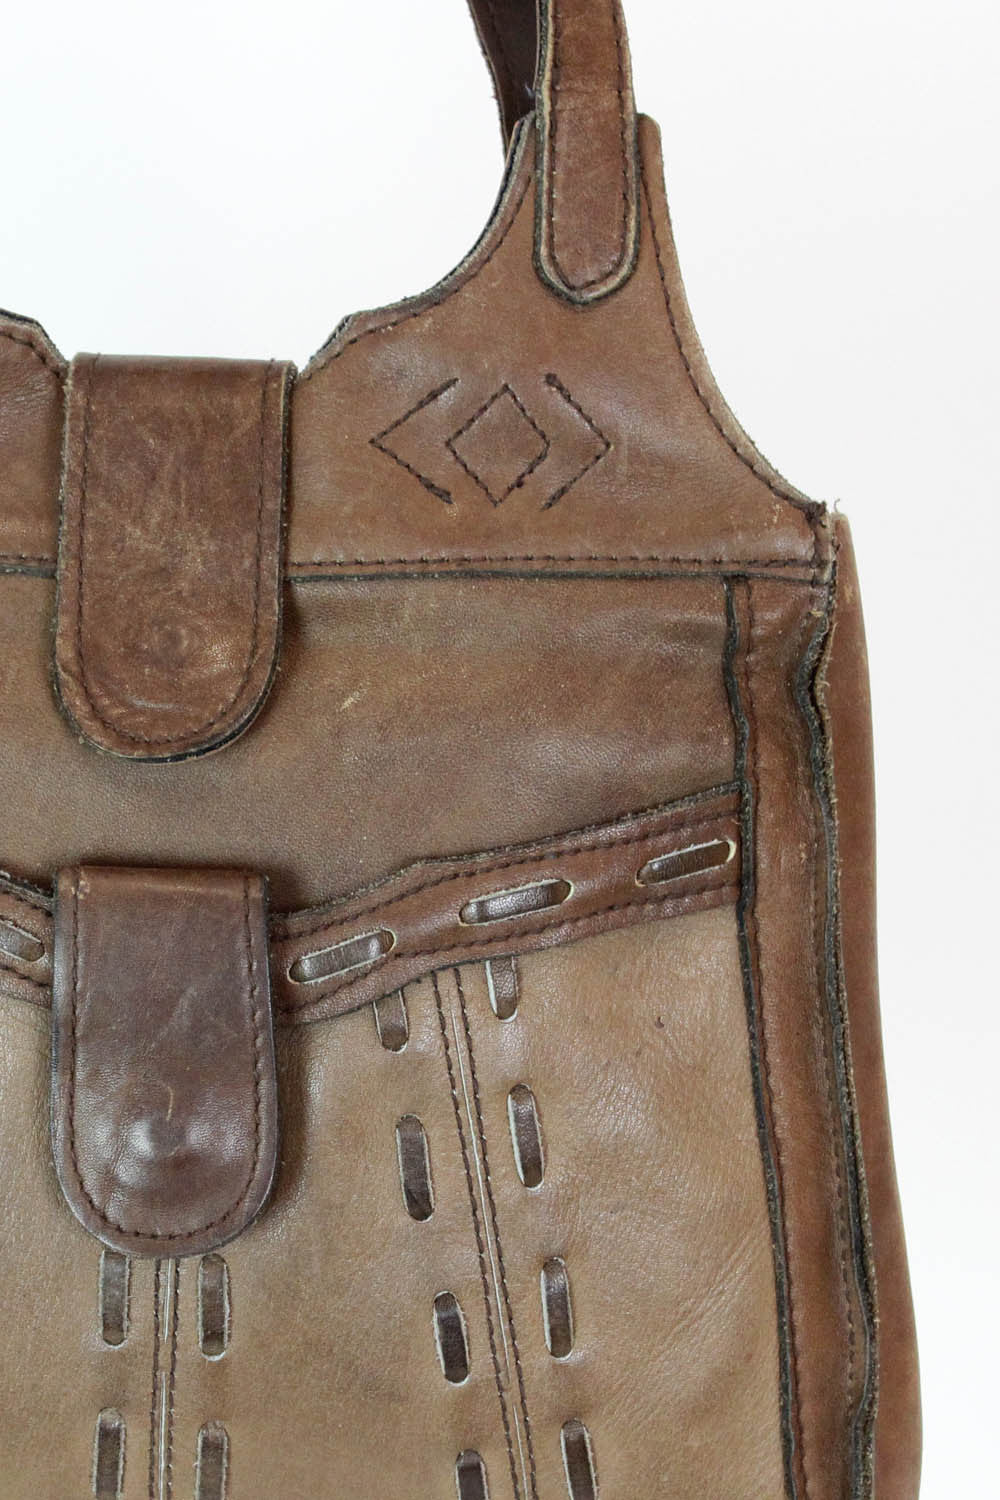 70s leather bag